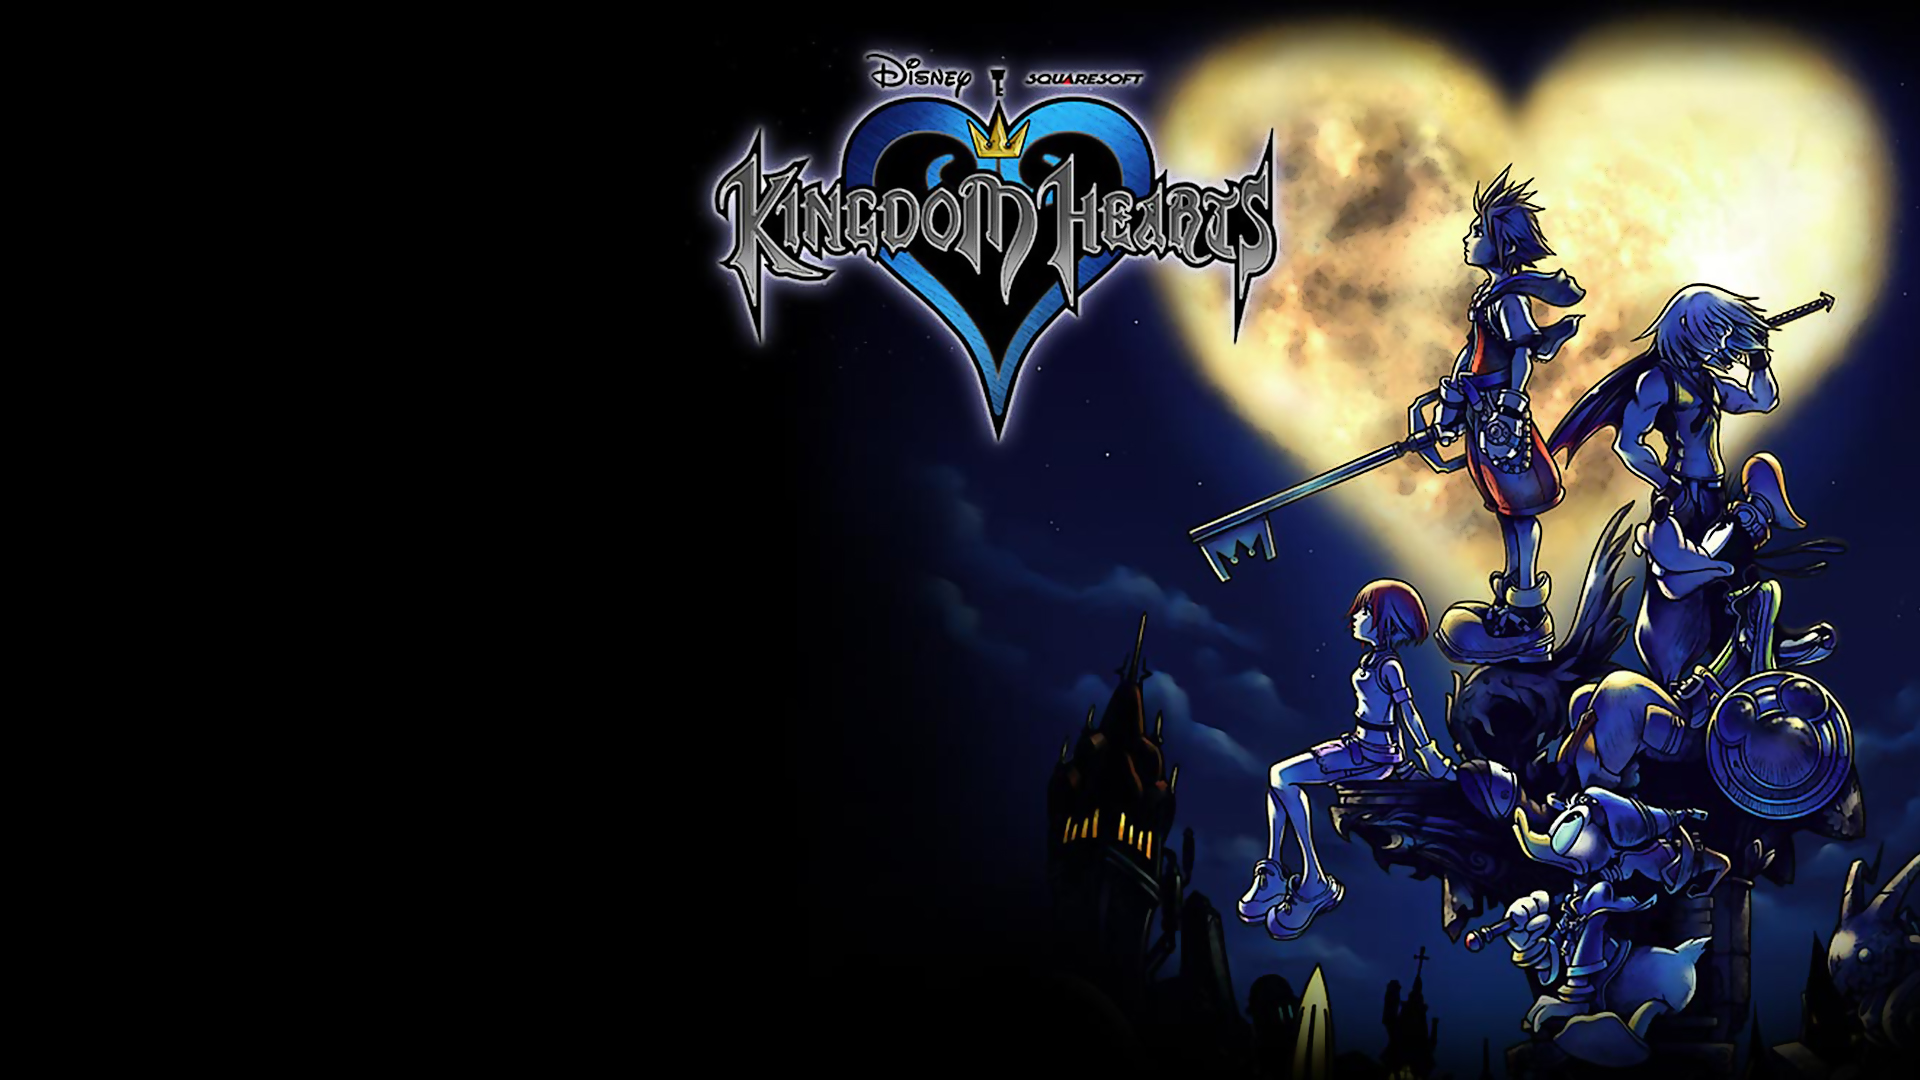 Kingdom Hearts Wallpaper 1920x1080 Kingdom Hearts 1920x1080